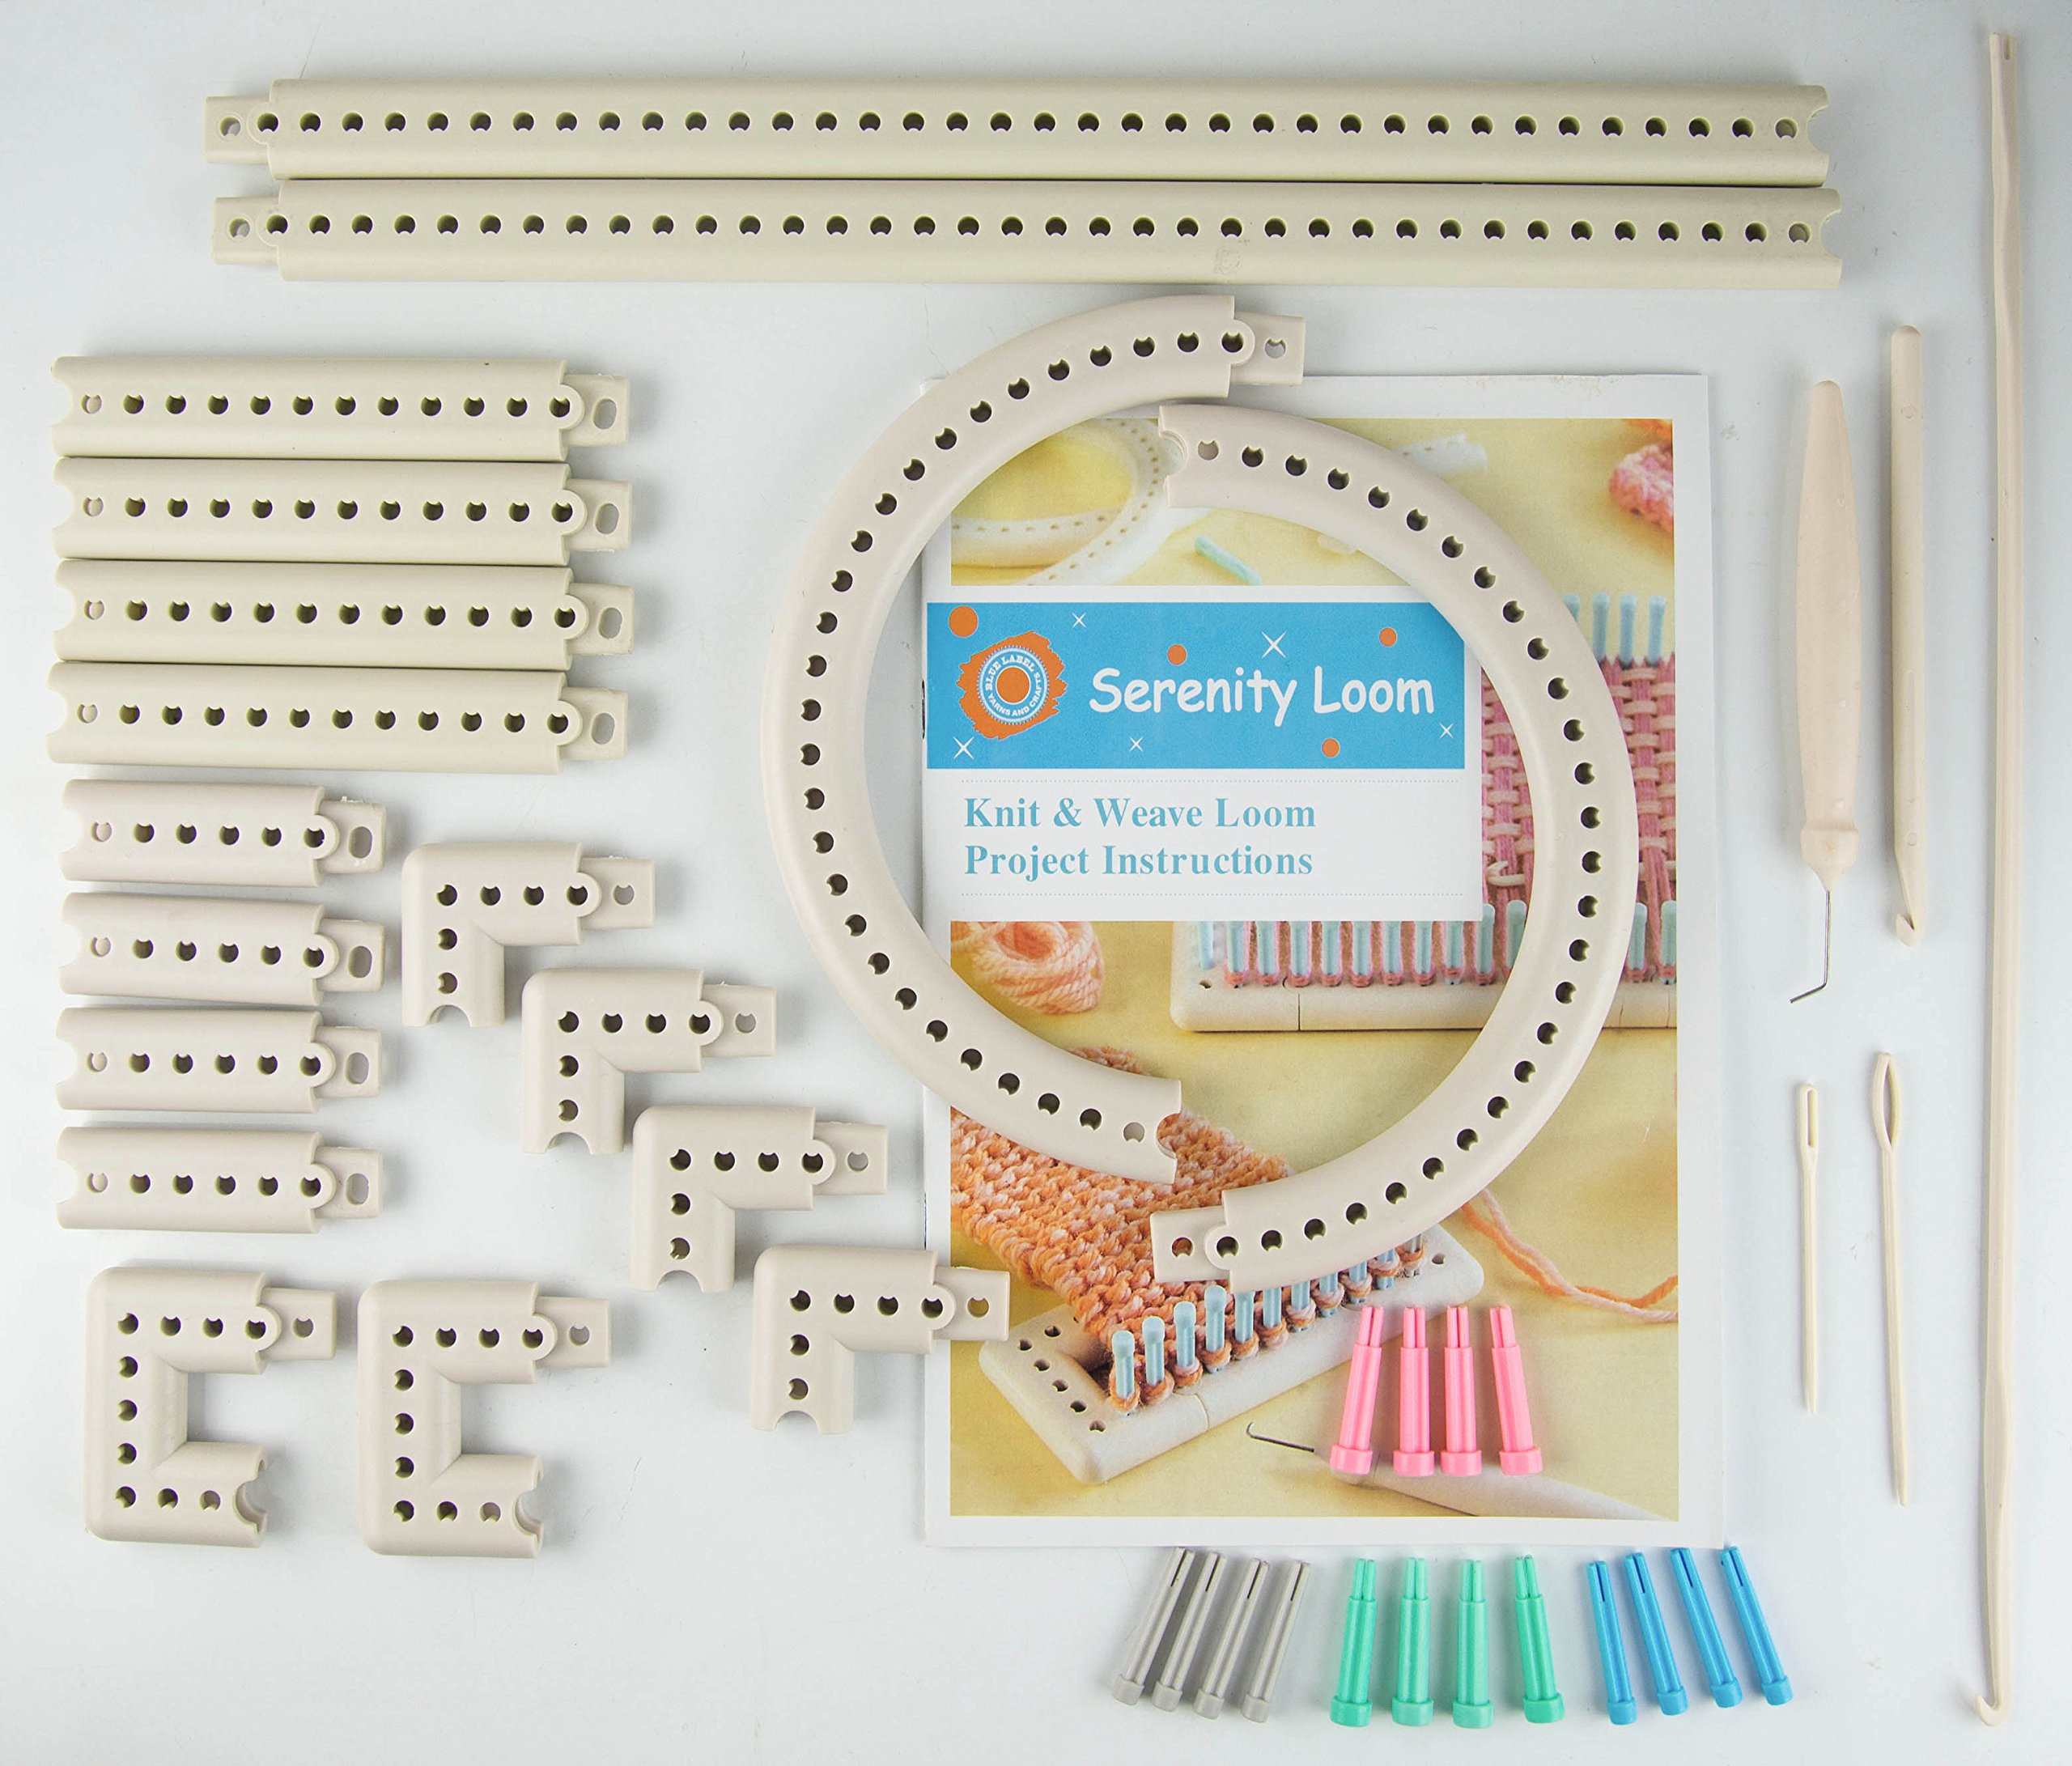 Feici - Multi-function Craft Yarn 5000-100 Knitting Board Knit Weave Loom Kit DIY Tool by Feici (Image #1)